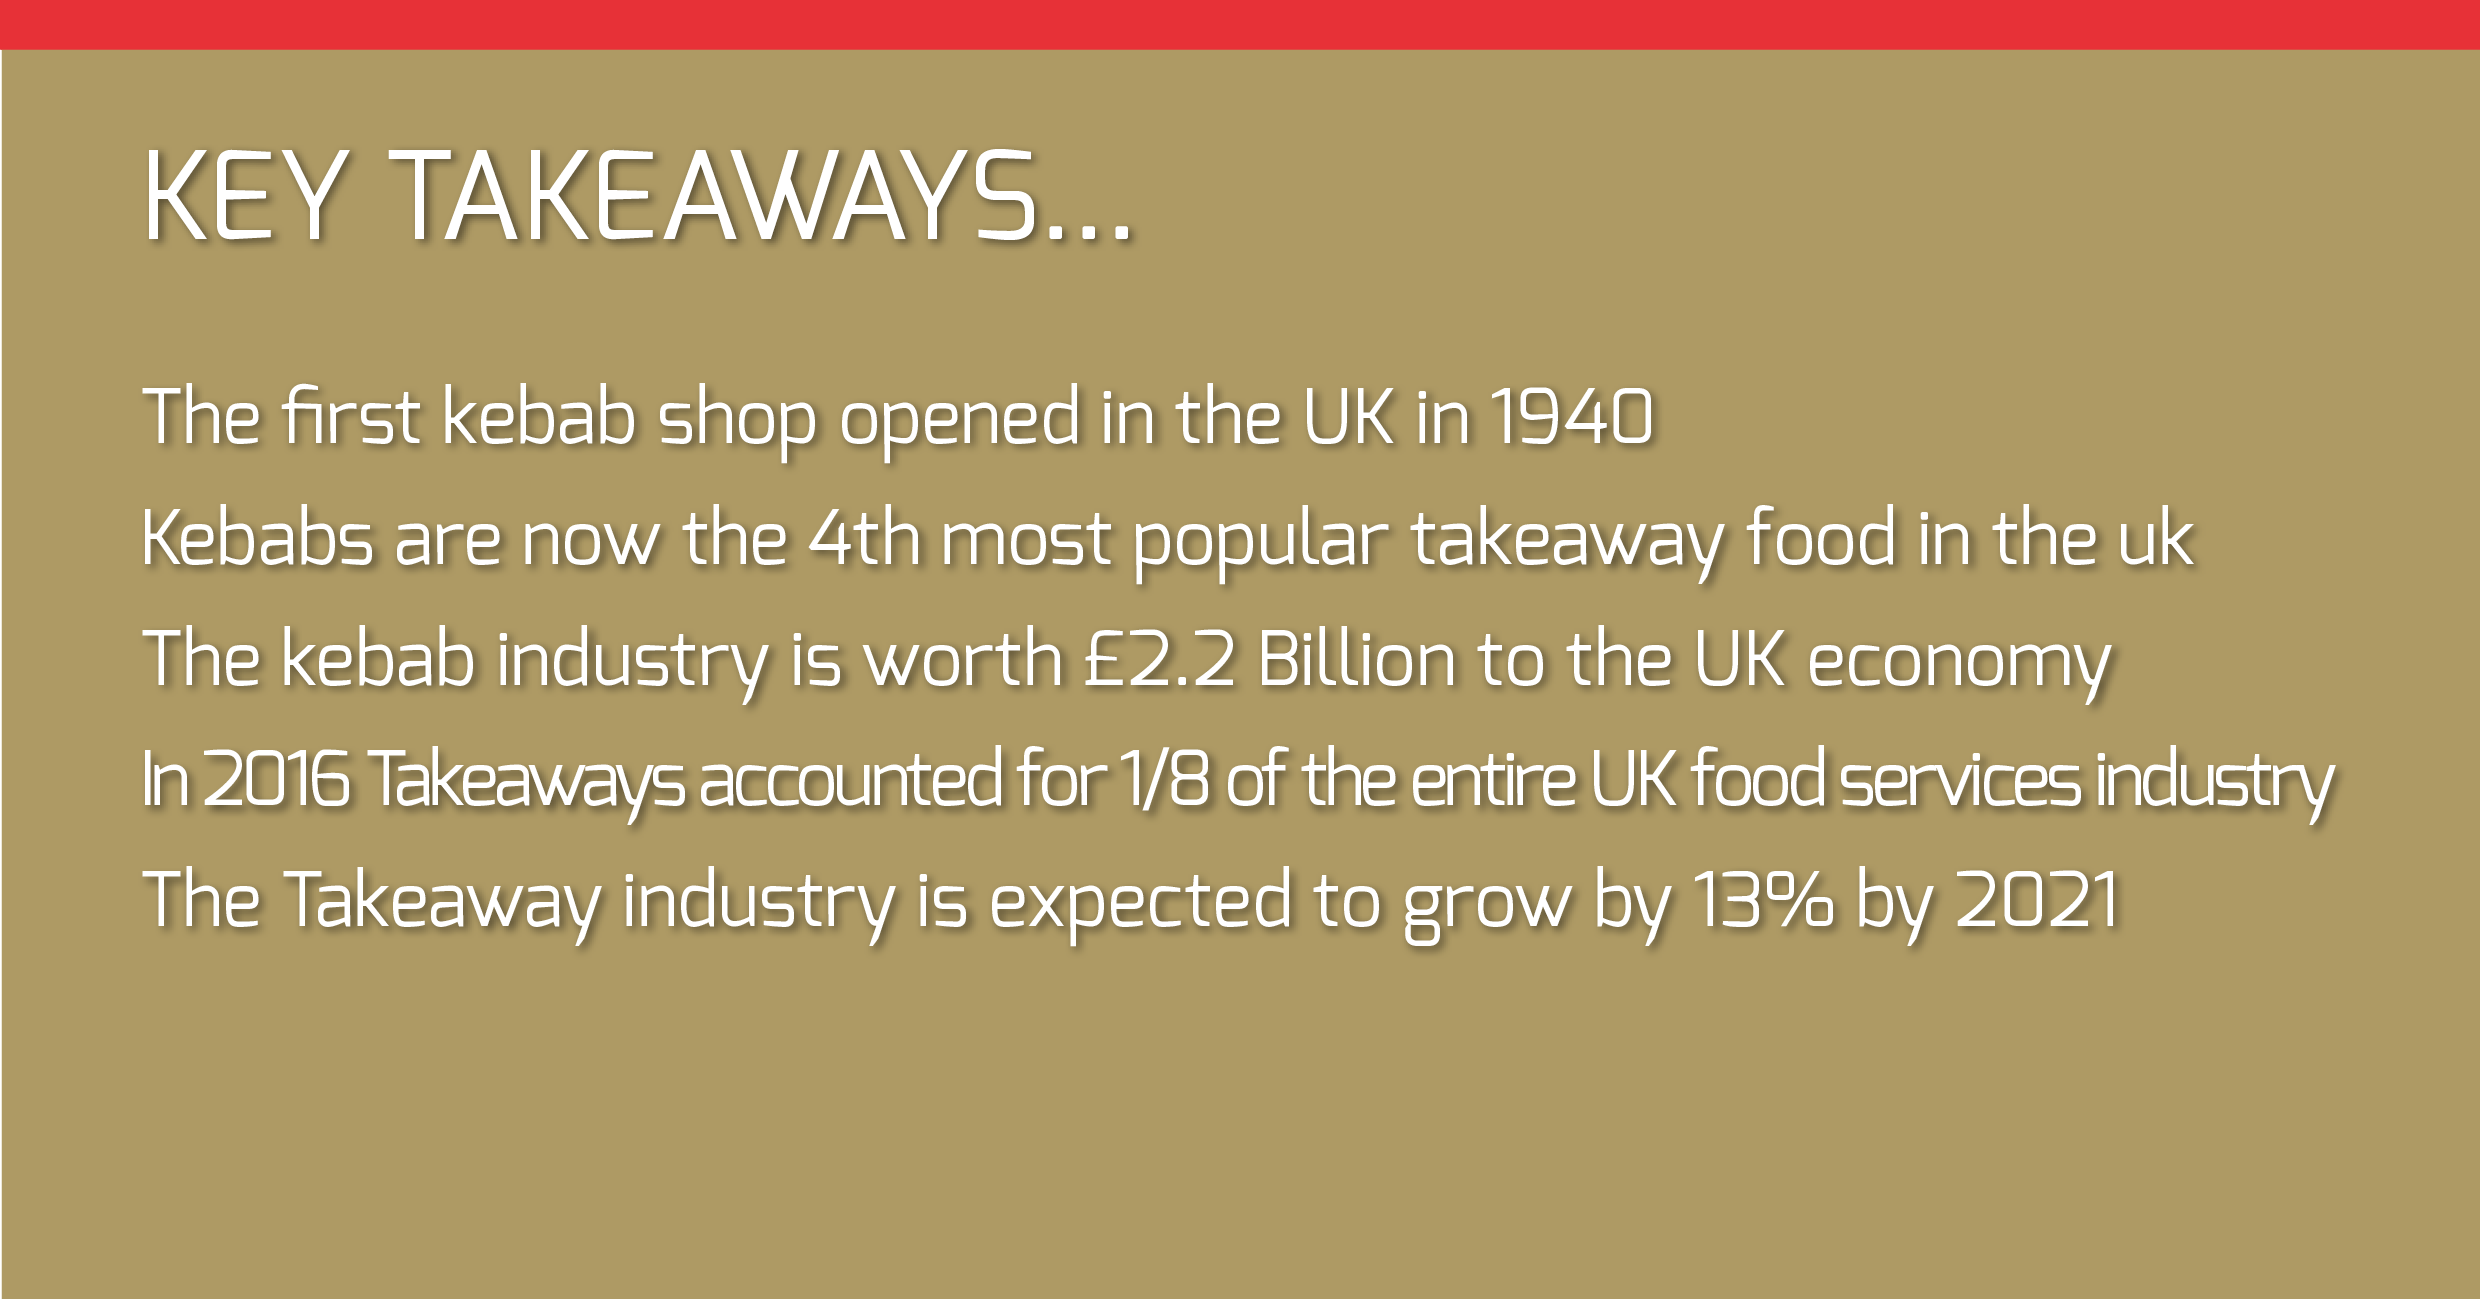 Kebab in the uk, key takeaways